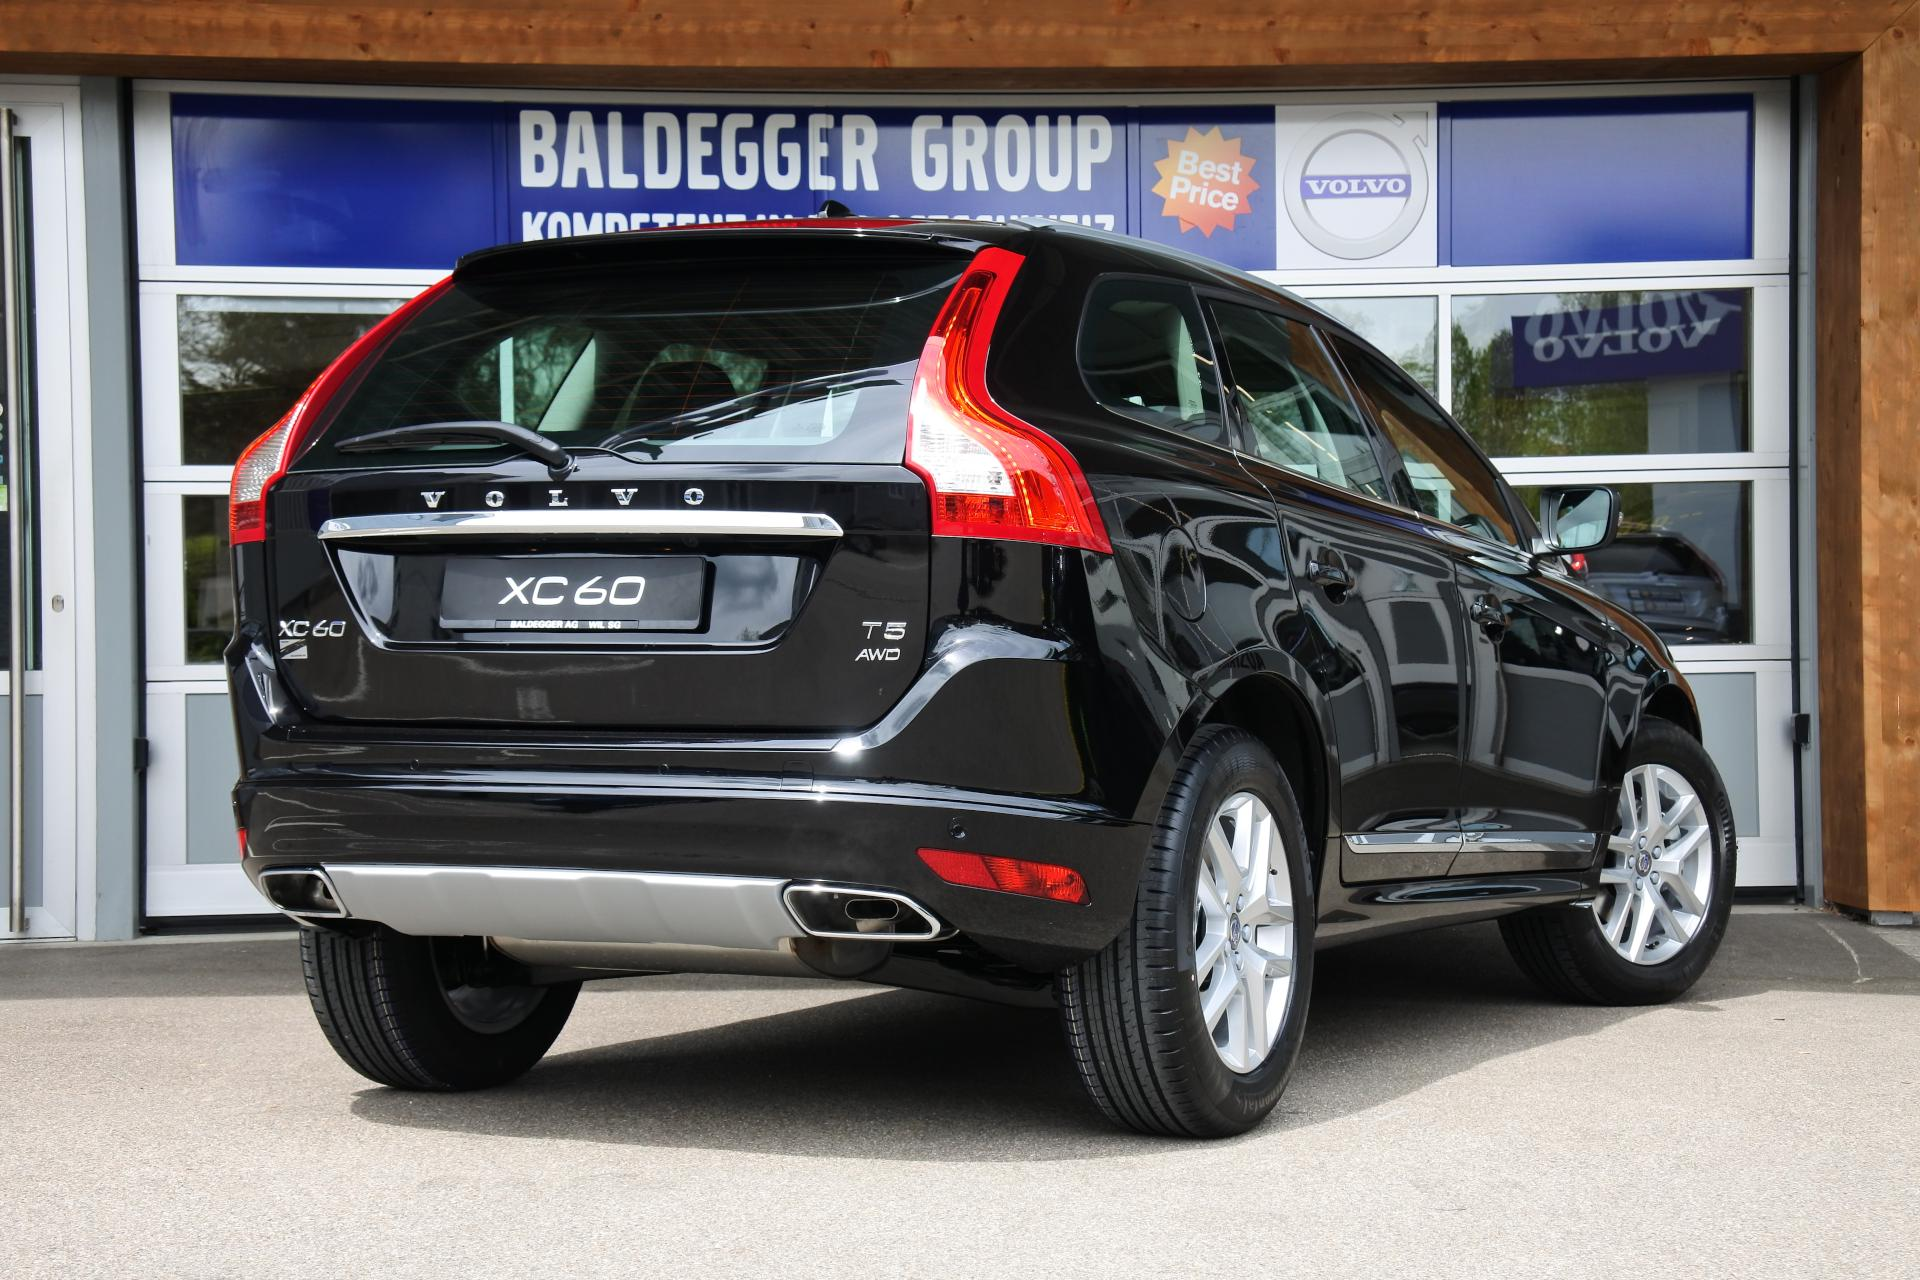 volvo xc60 t5 awd executive baldegger automobile ag. Black Bedroom Furniture Sets. Home Design Ideas